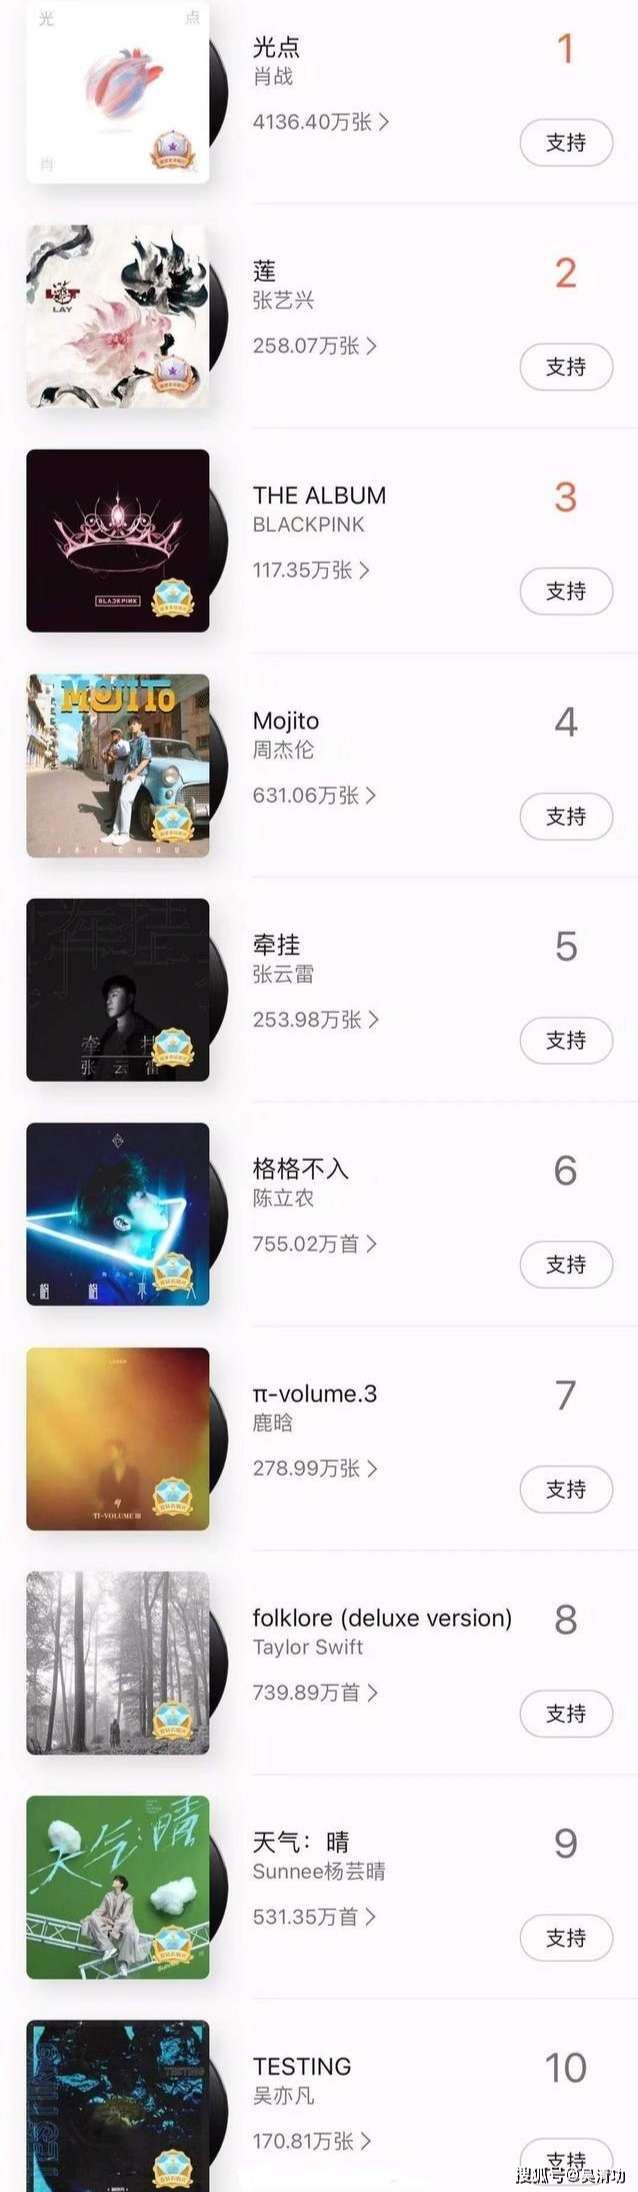 xiao zhan top 10 best seller album 2020 qq music